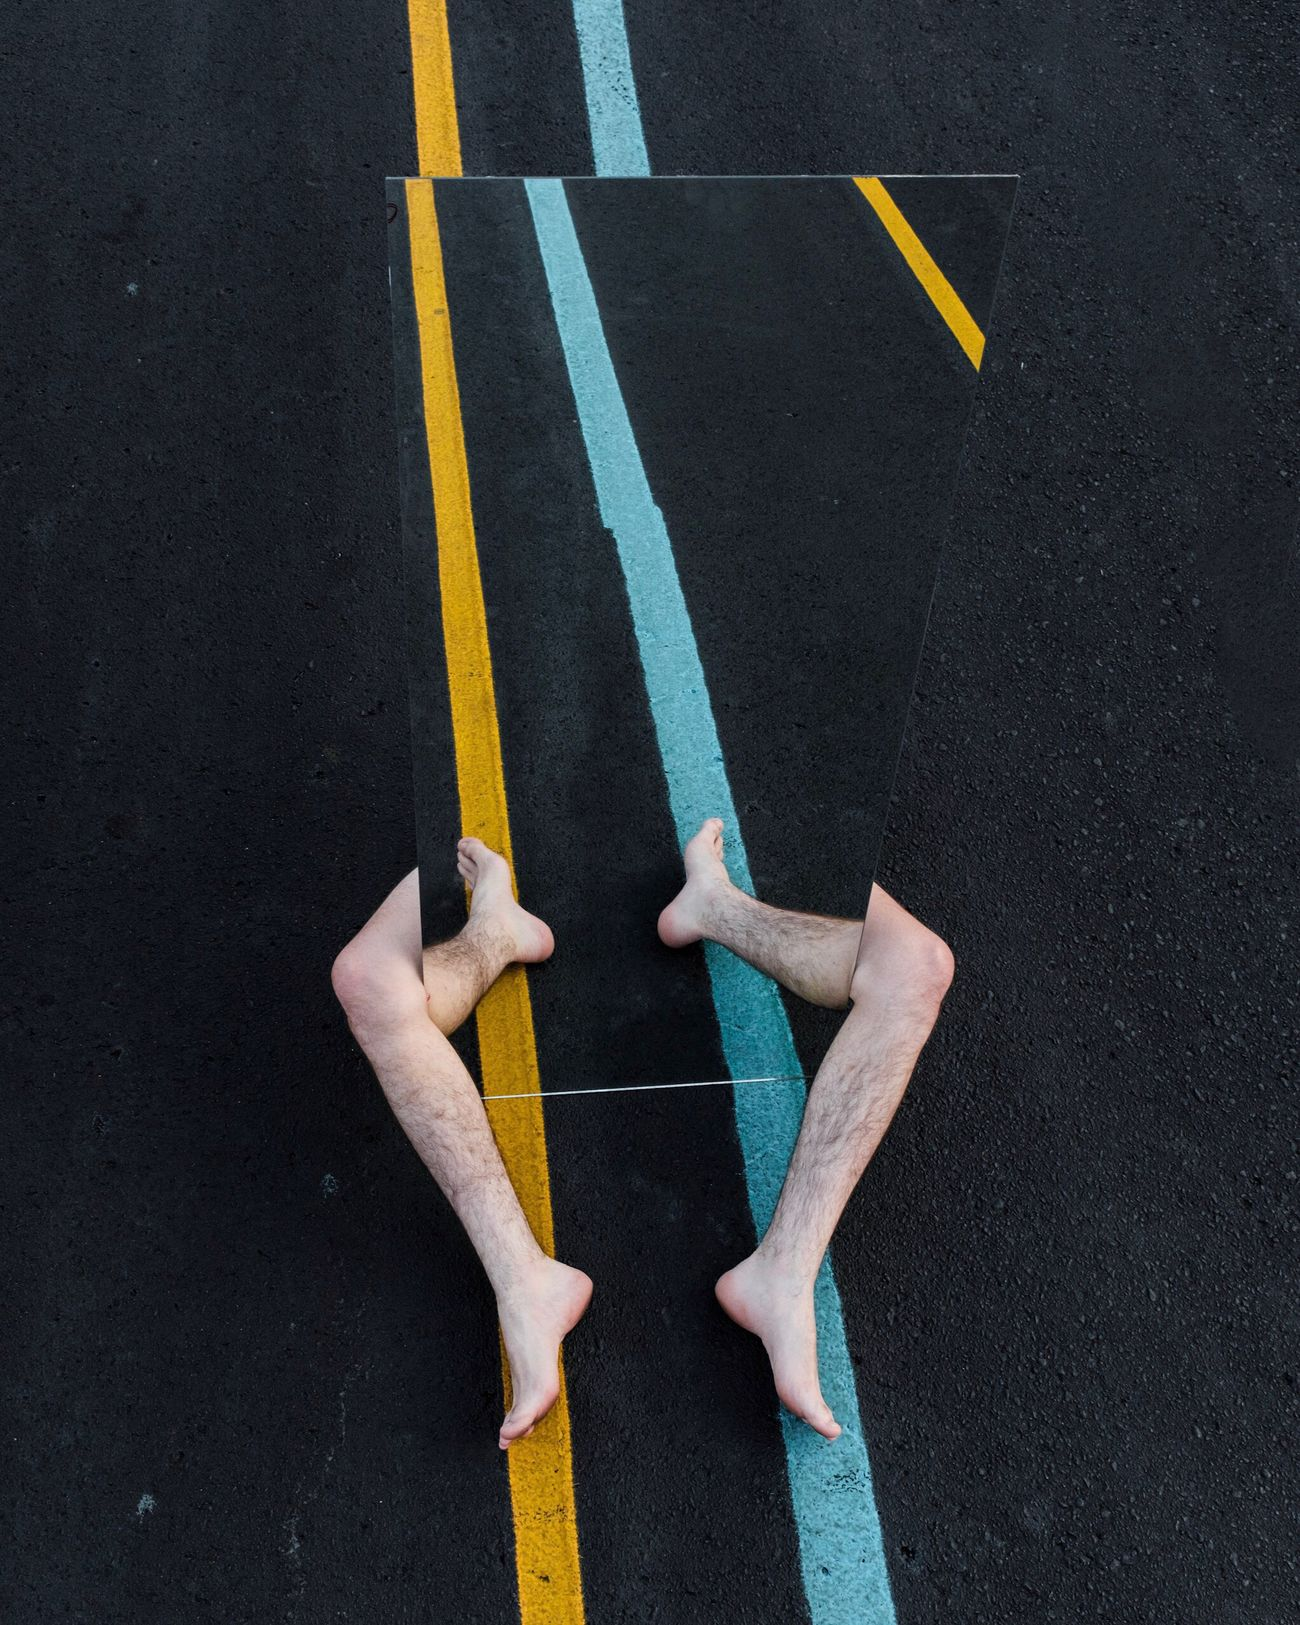 road marking, high angle view, two people, yellow, real people